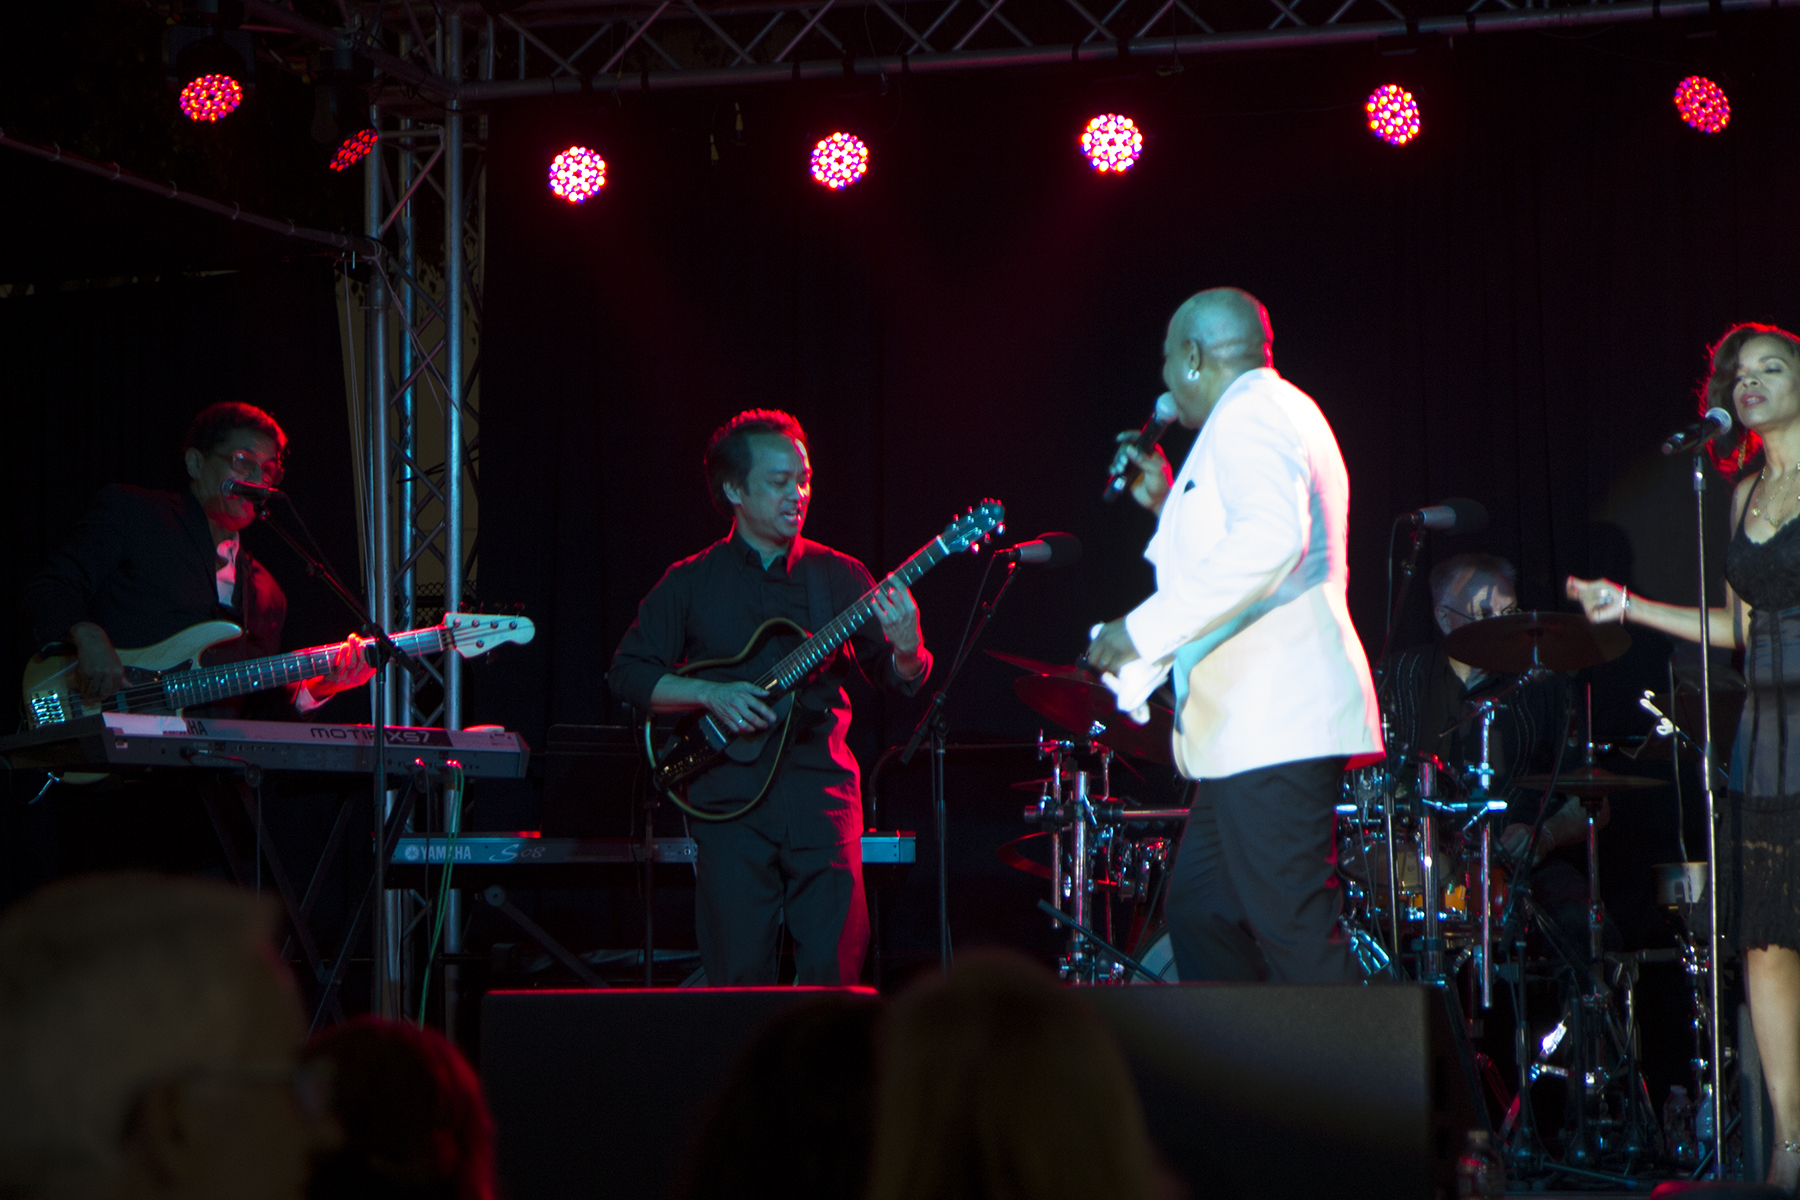 playing guitar for Peabo Bryson